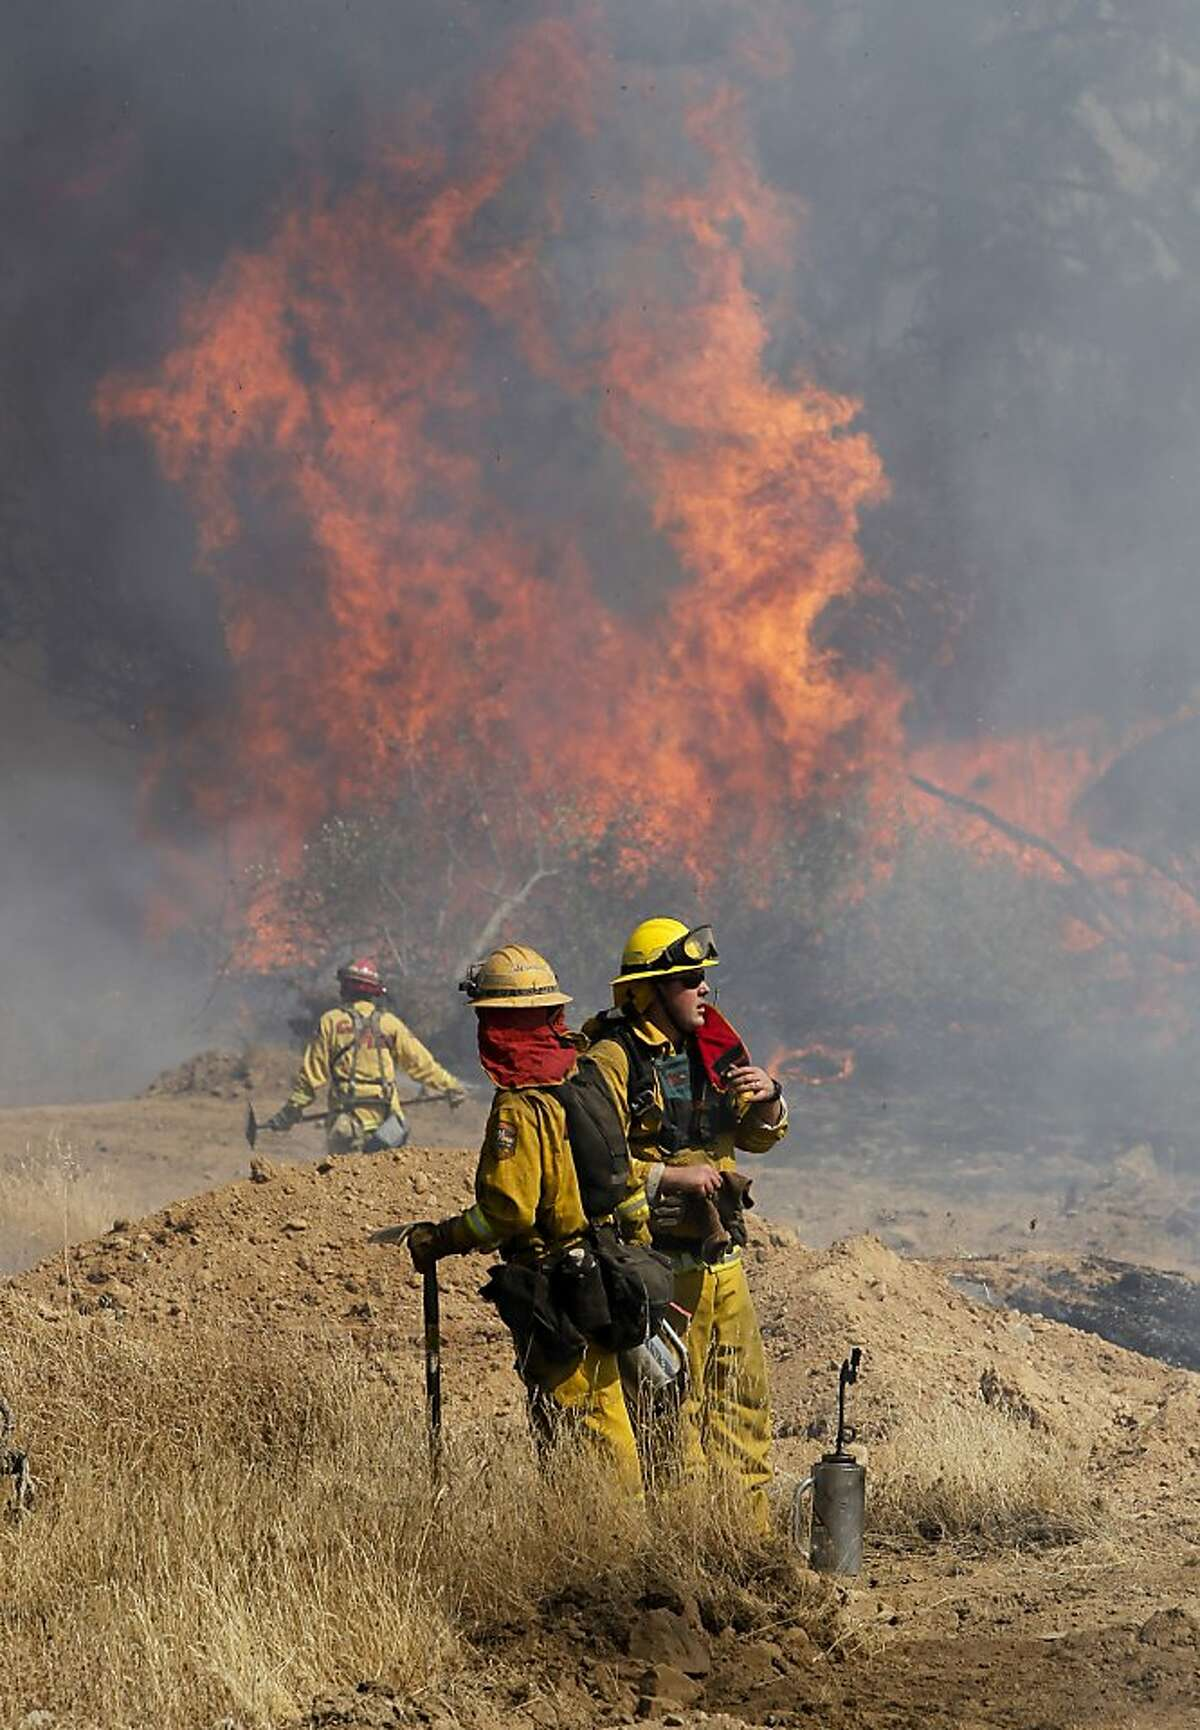 Fire crews set back-fires to prevent the wildfire from crossing Ferretti Rd. on Thursday August 22, 2013, as the Rim Fire has grown to over 36,000 acres in Groveland, Calif.